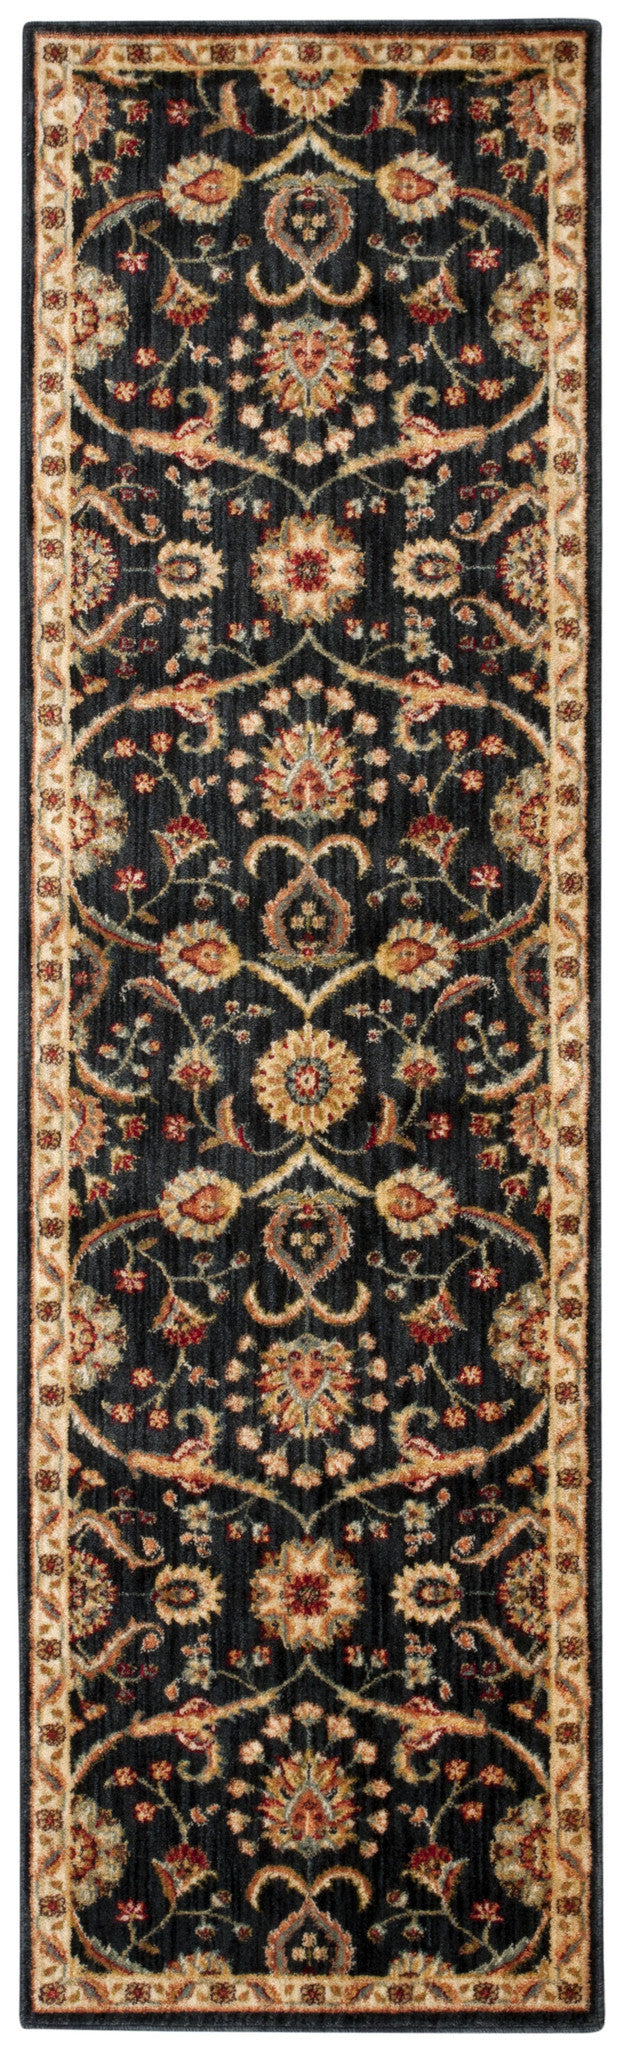 Kathy Ireland Ancient Times Persian Treasure Black Area Rug By Nourison BAB01 BLK